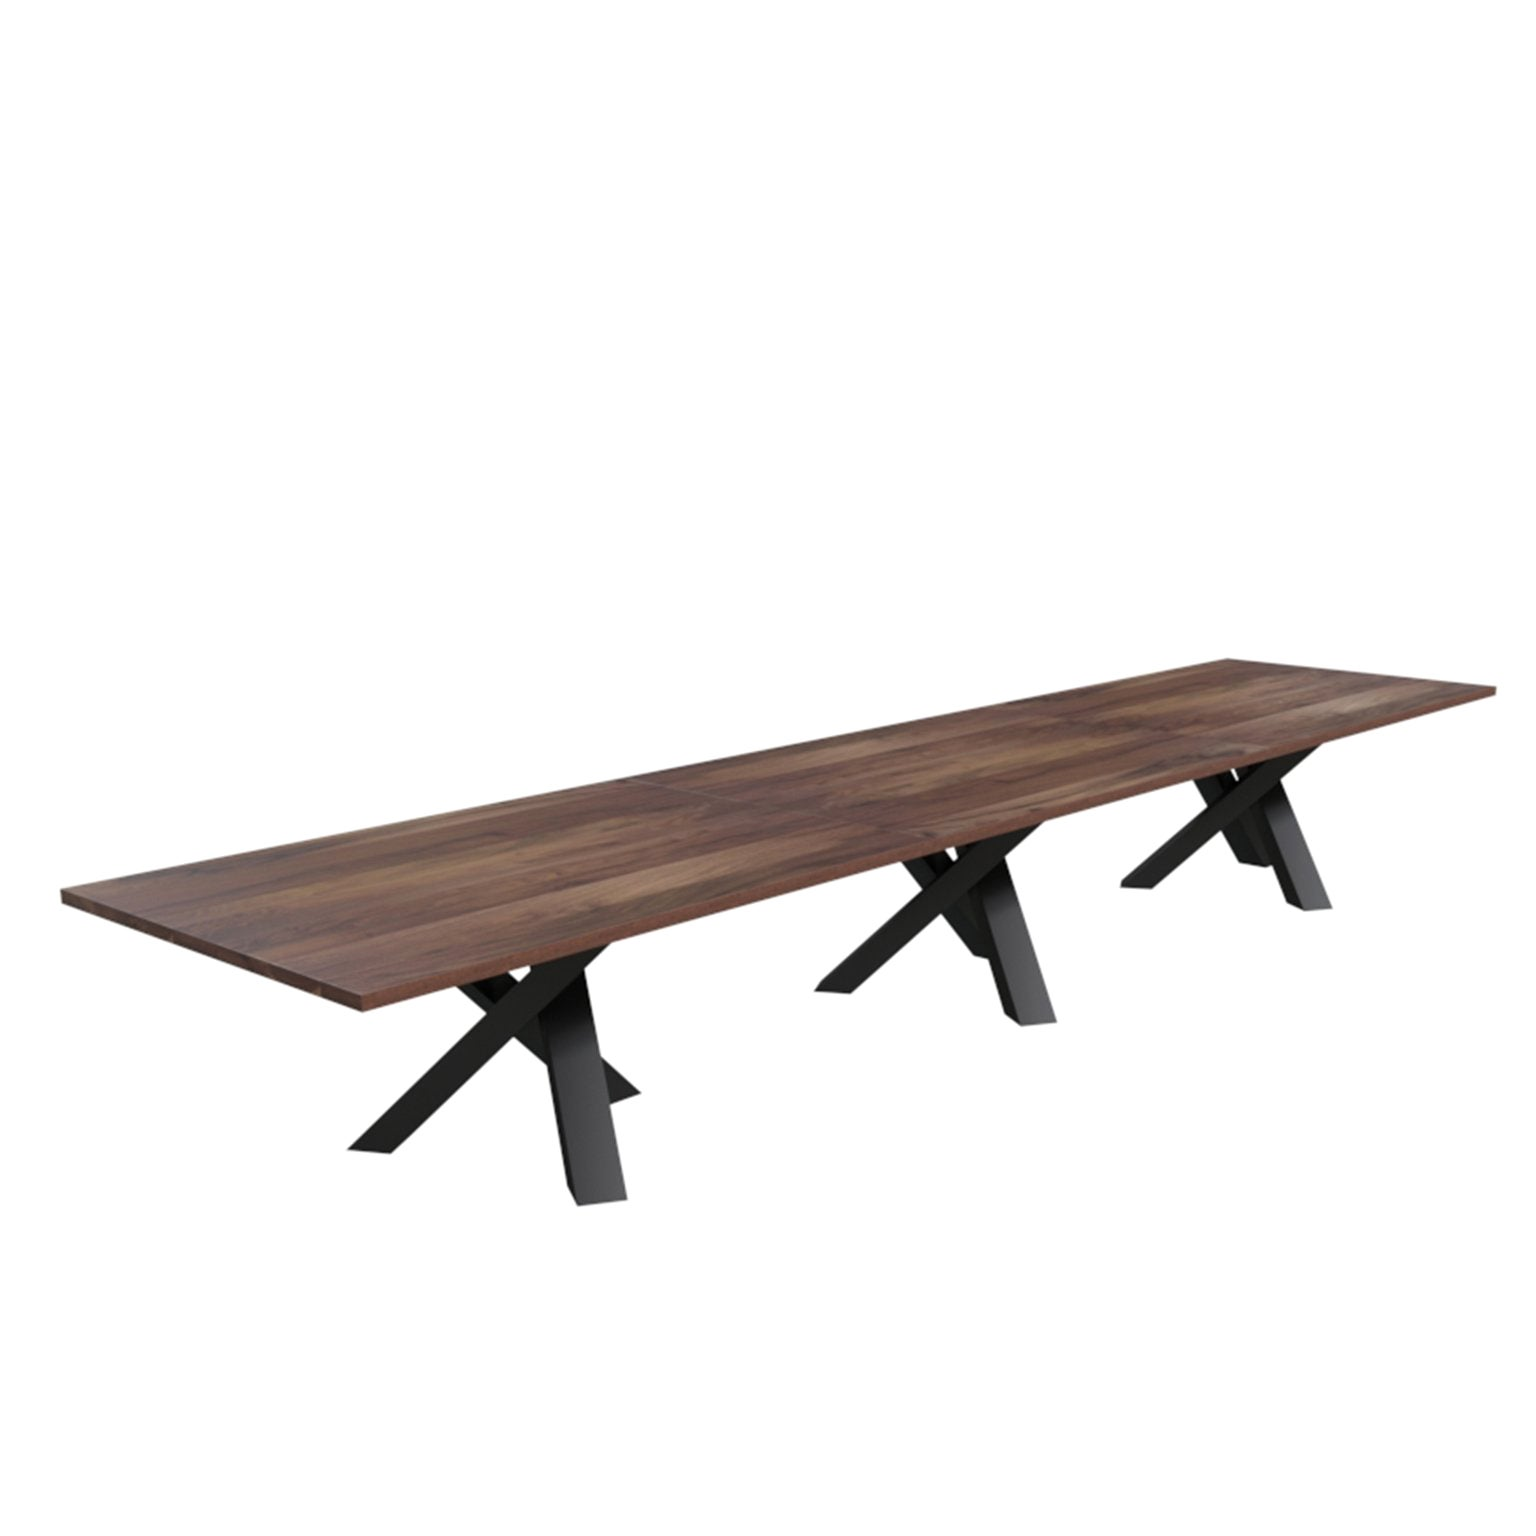 """Custom """"Campfire"""" Conference Table Made from Solid Wood with Metal Accents"""